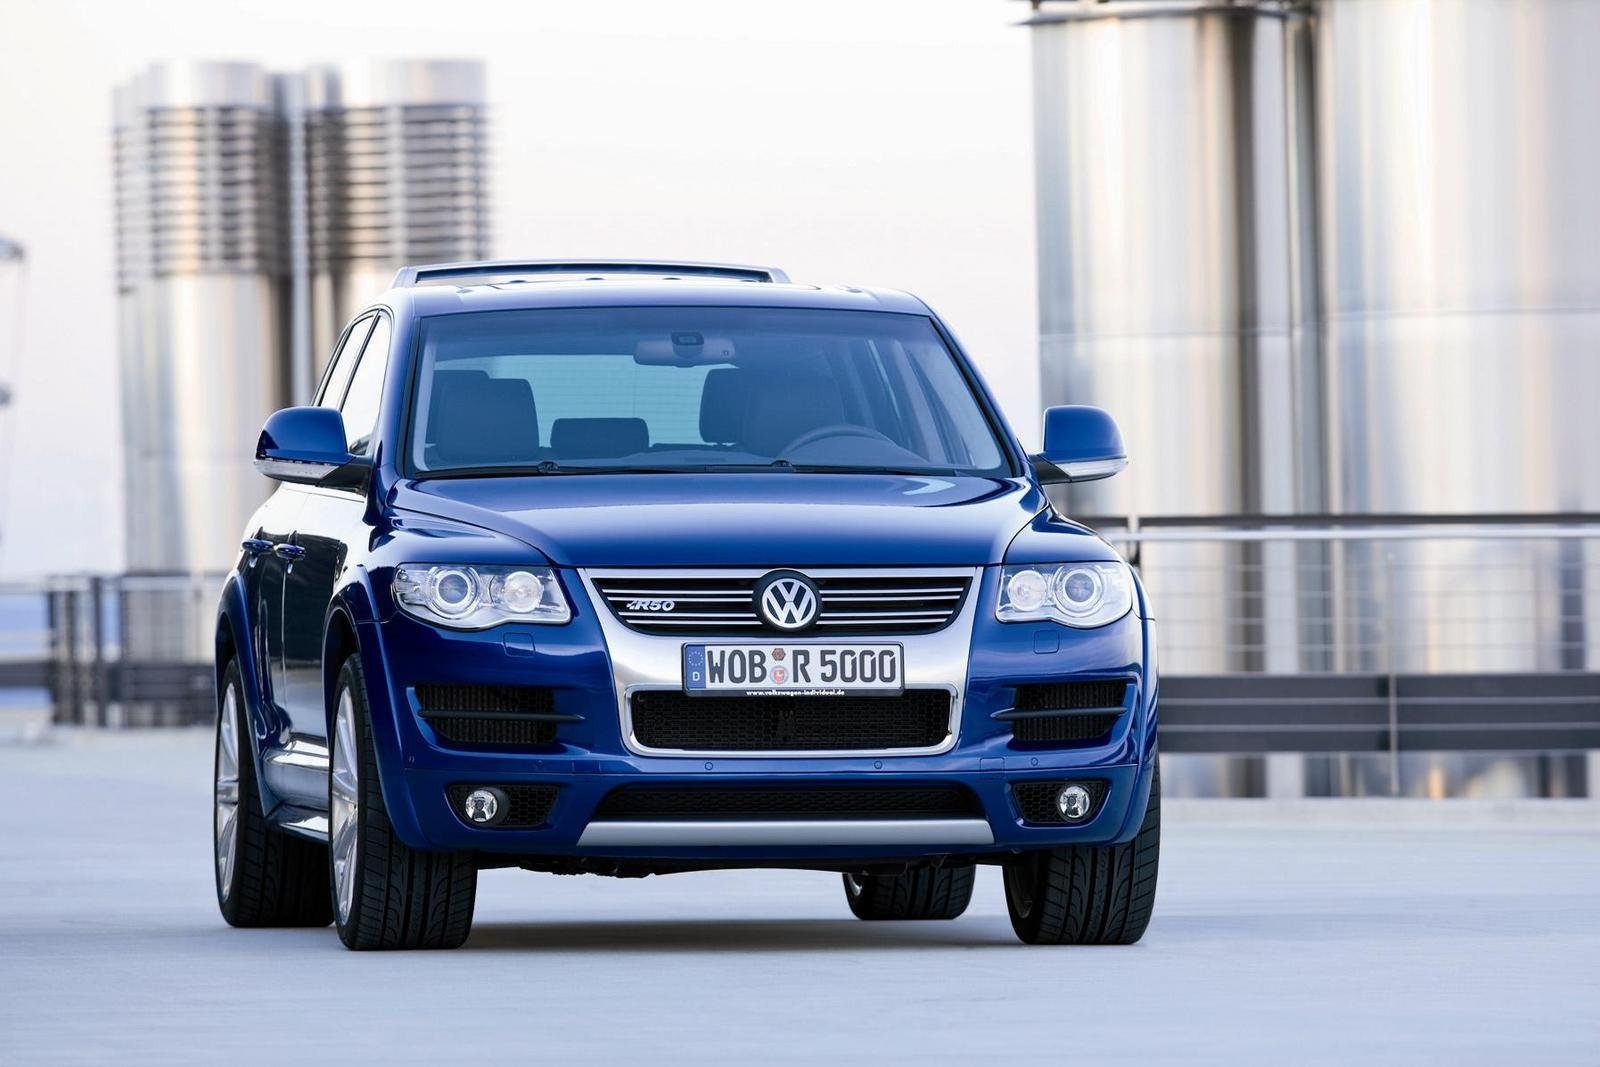 2008 volkswagen touareg r50 review top speed. Black Bedroom Furniture Sets. Home Design Ideas